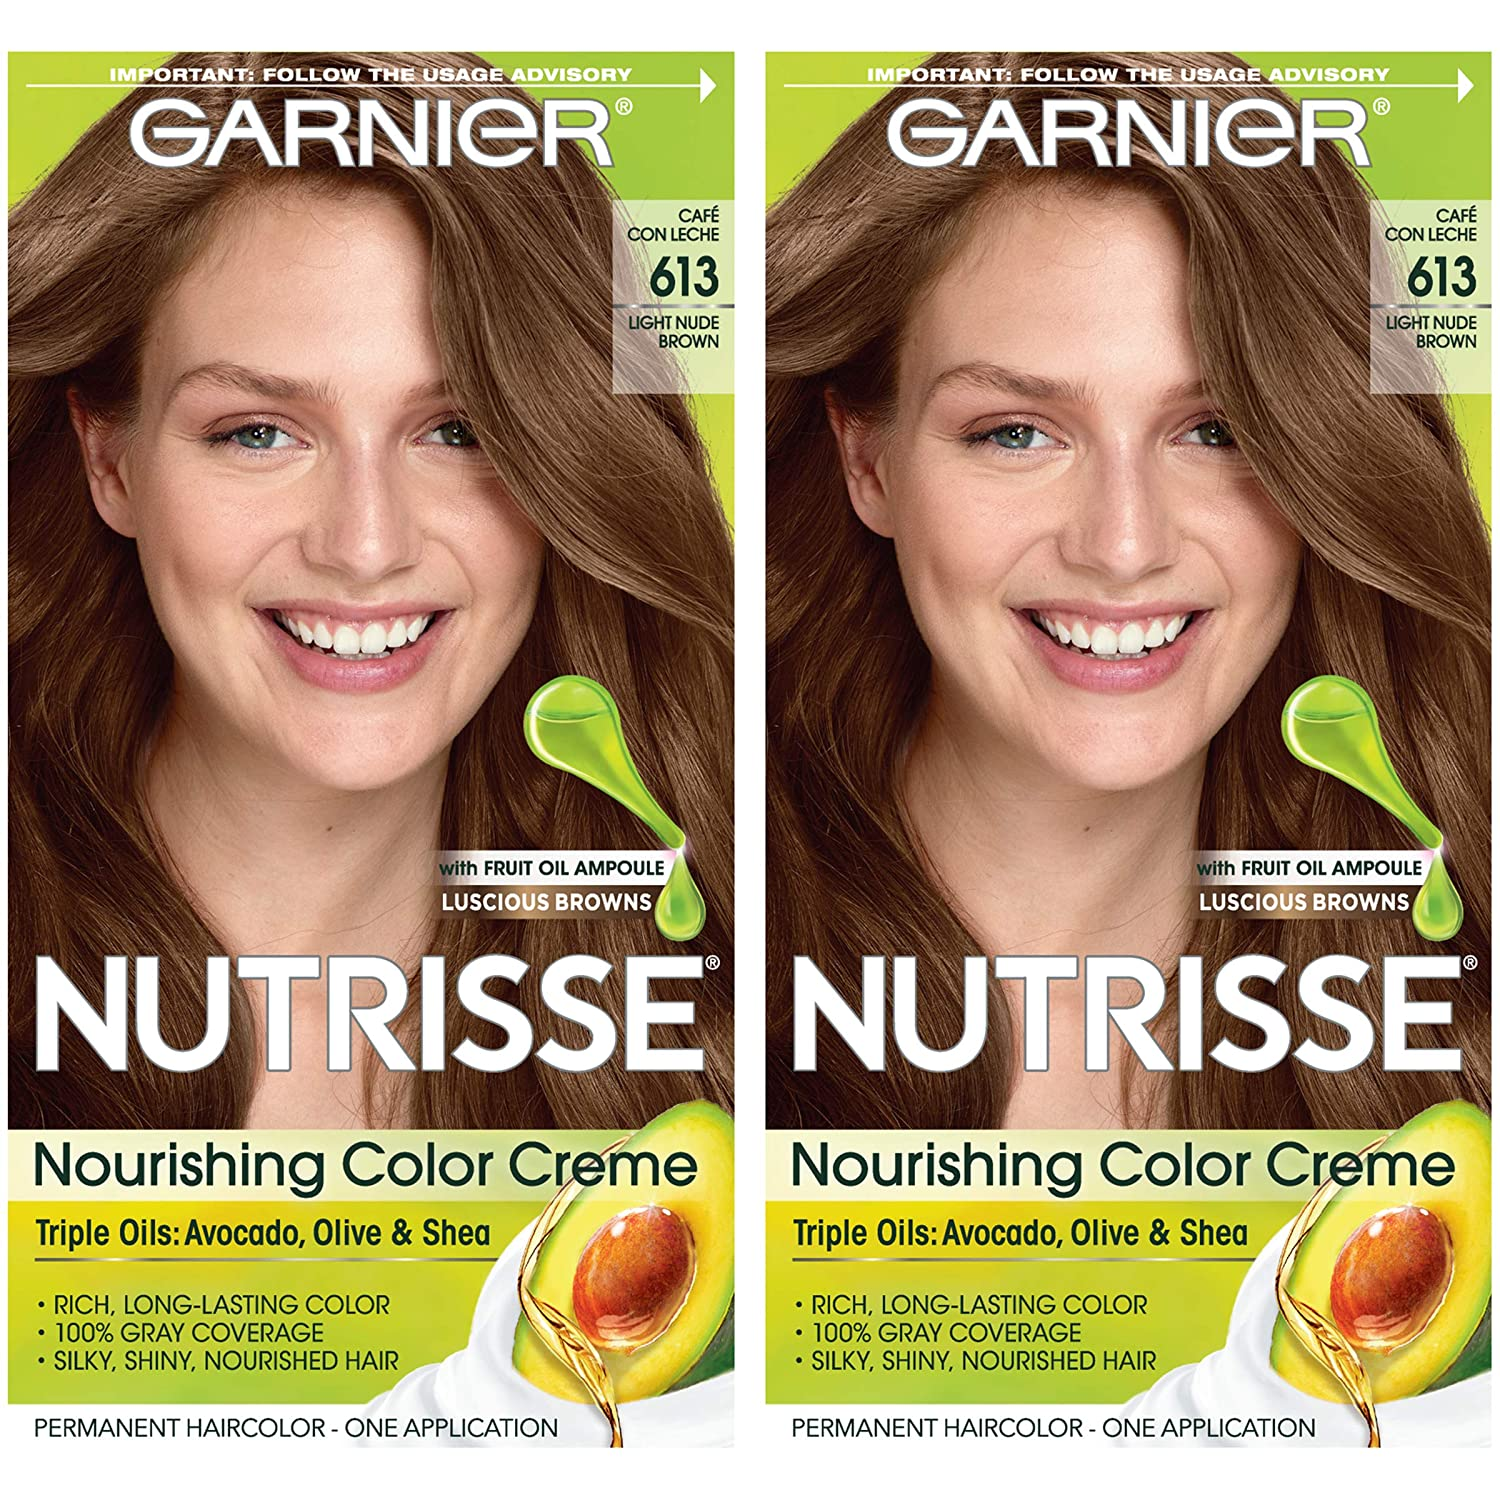 Amazon.com : Garnier Hair Color Nutrisse Nourishing Hair Color Creme, 613 Light Nude Brown, 2 Count : Beauty